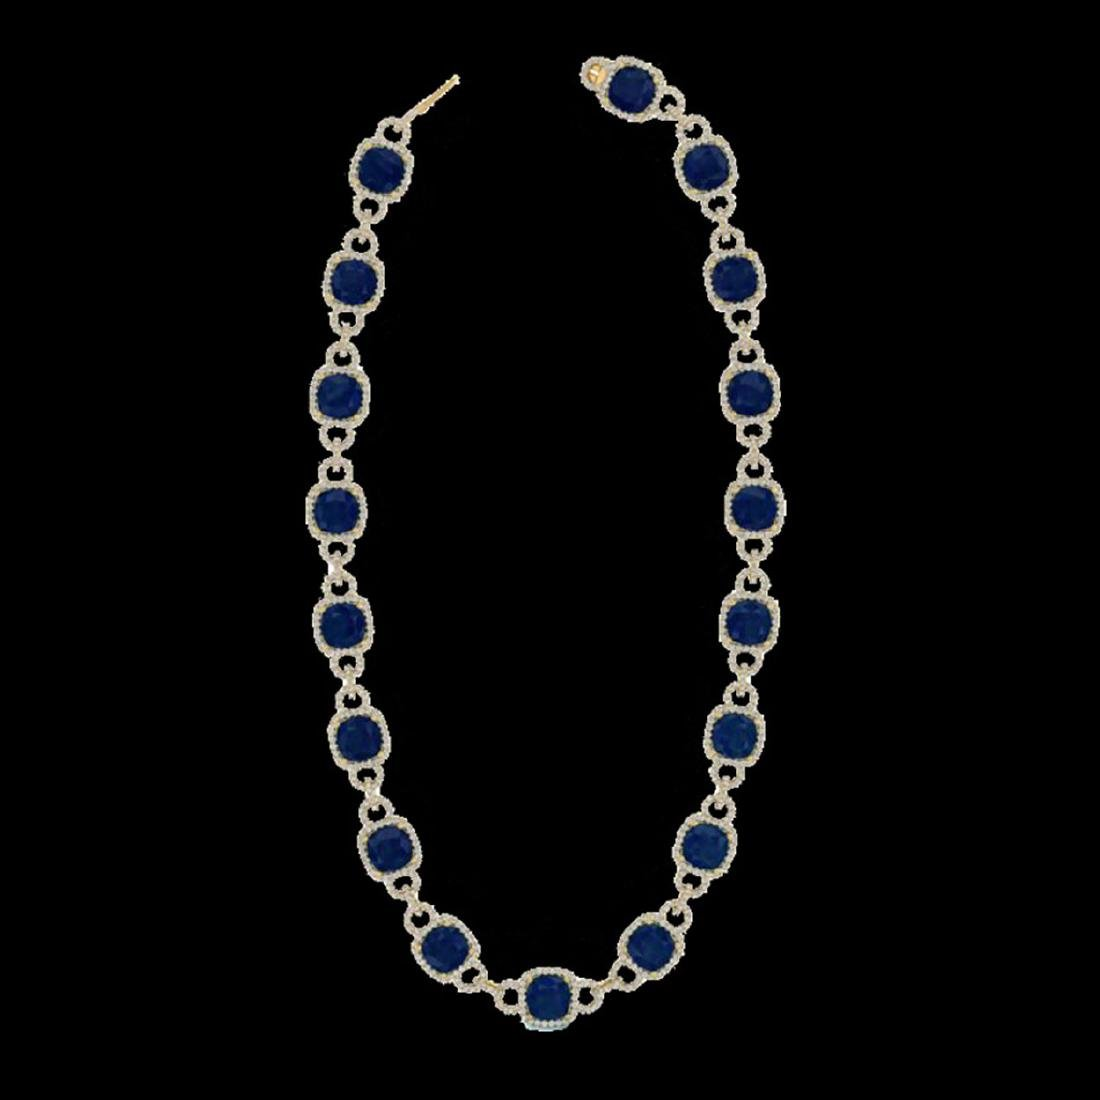 56 ctw Sapphire & VS/SI Diamond Eternity Necklace 14K - 2